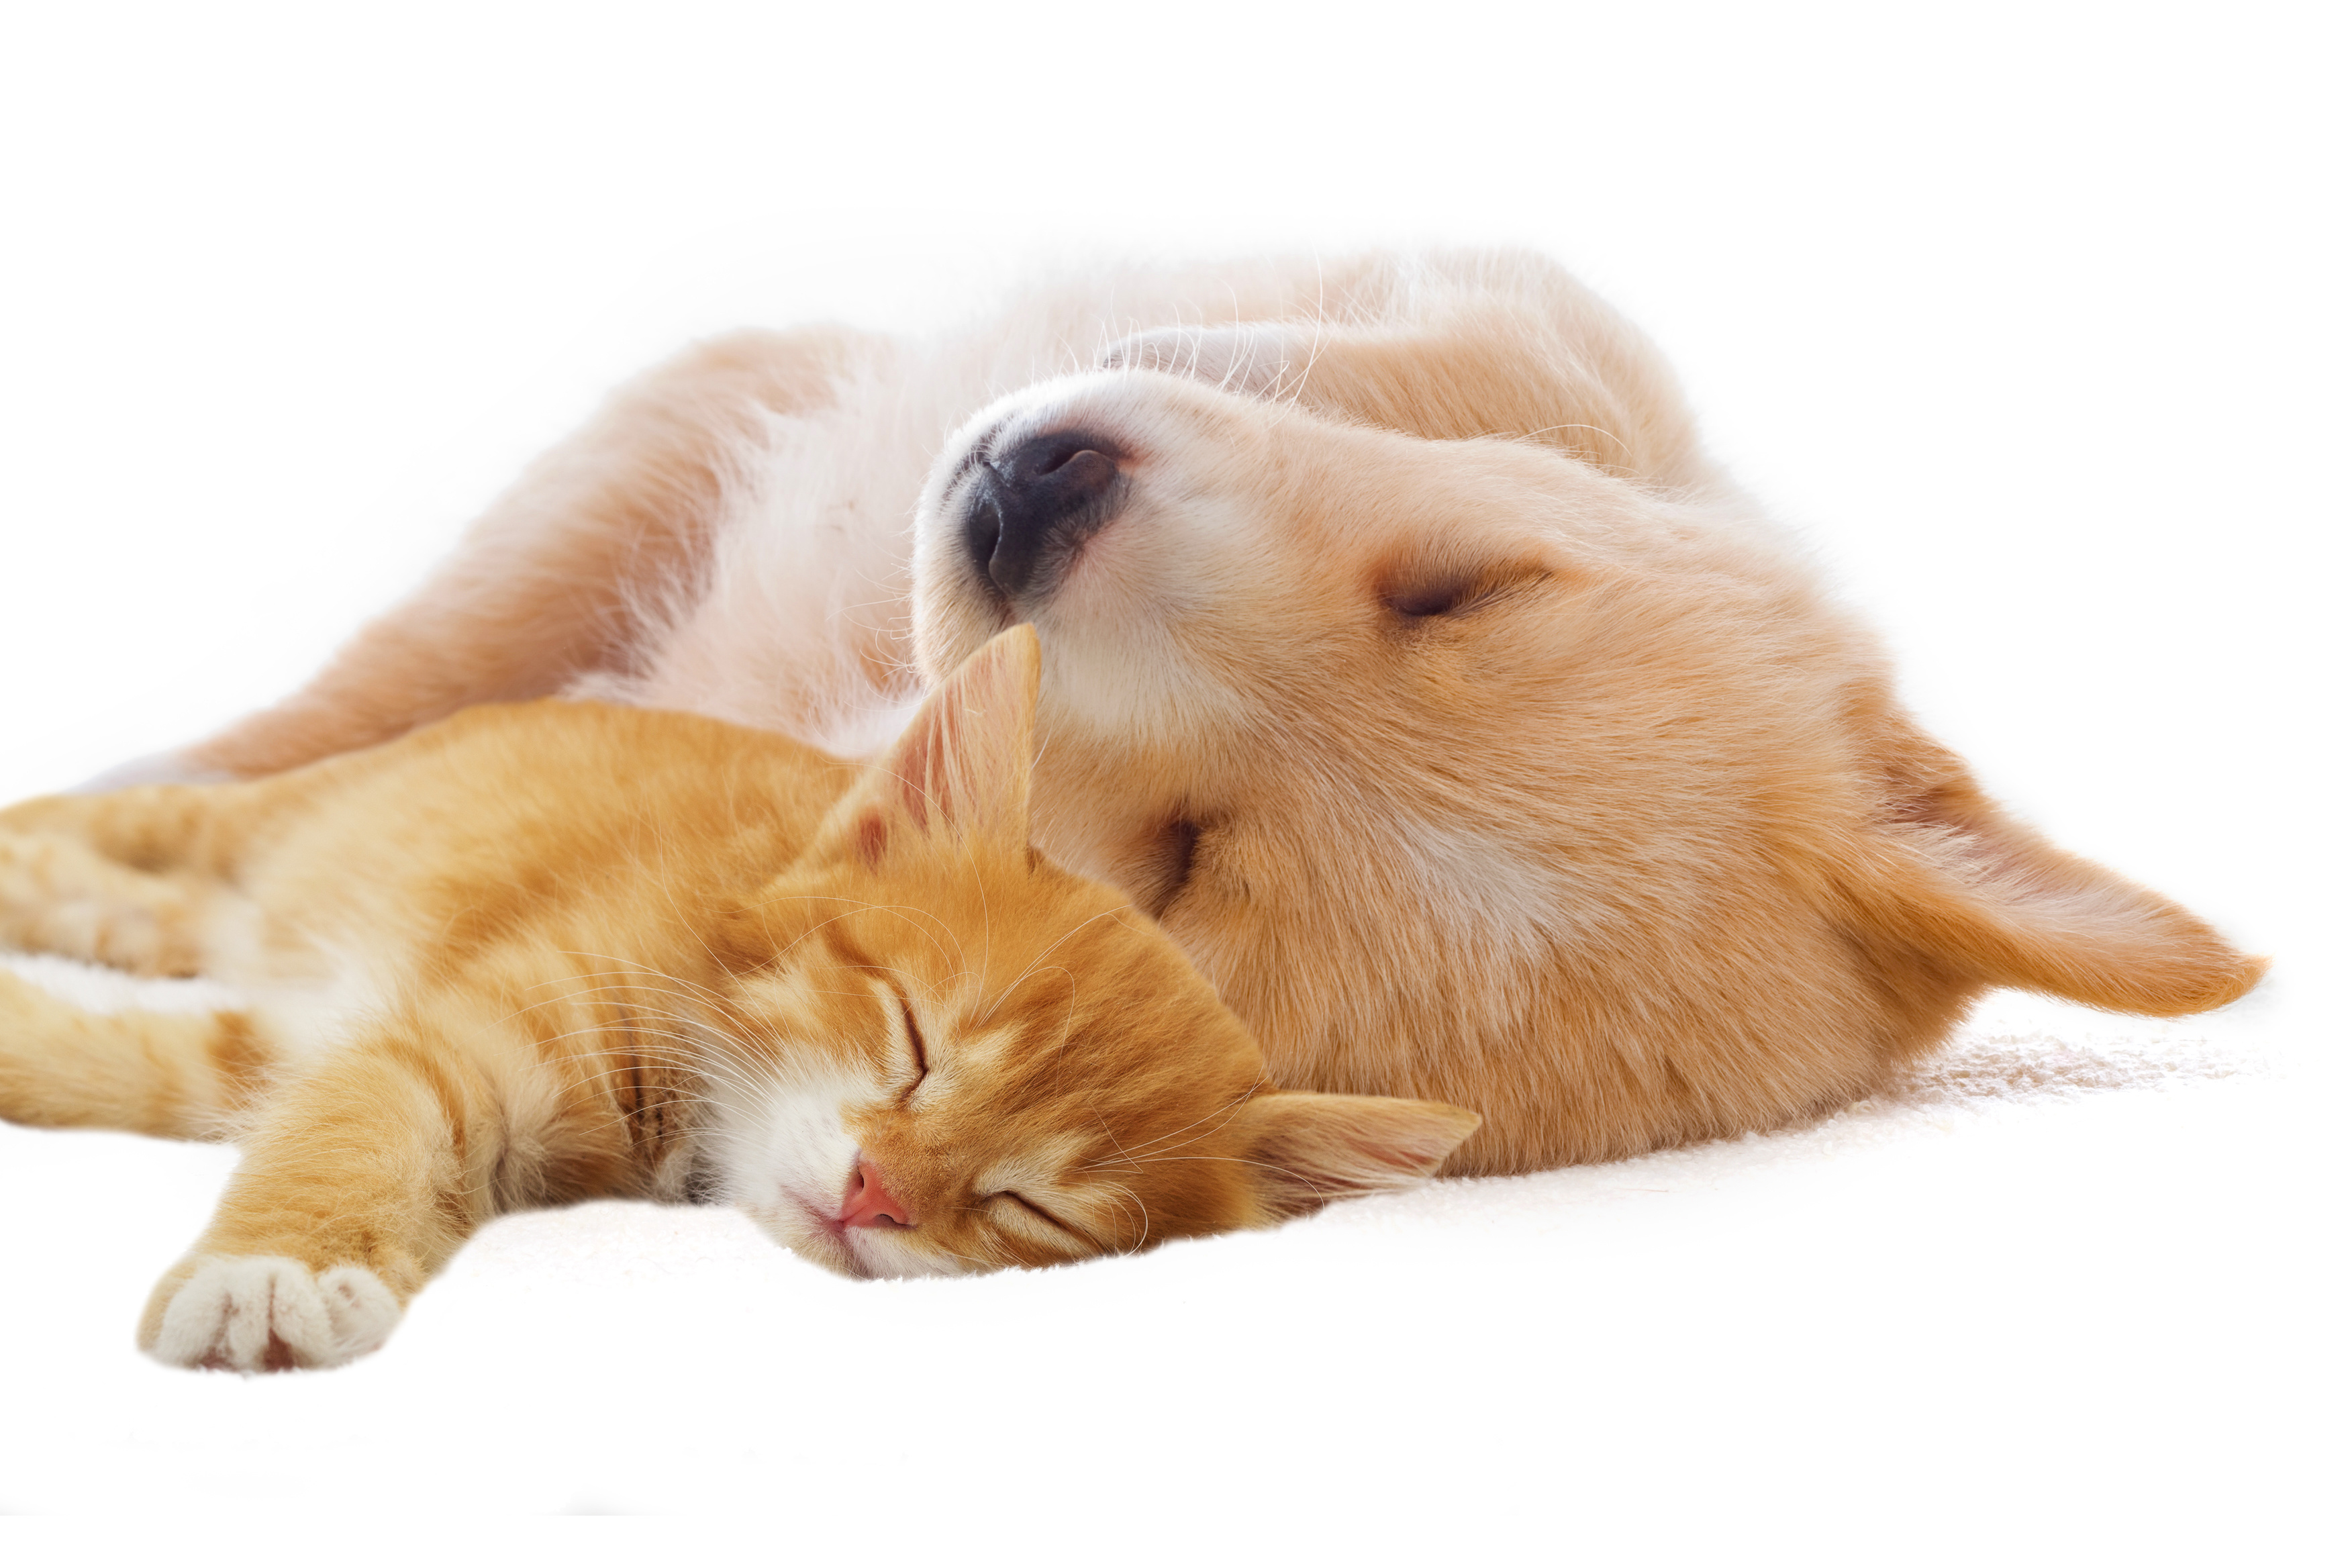 ADVANTAGES OF THE STERILIZATION OF DOGS AND CATS